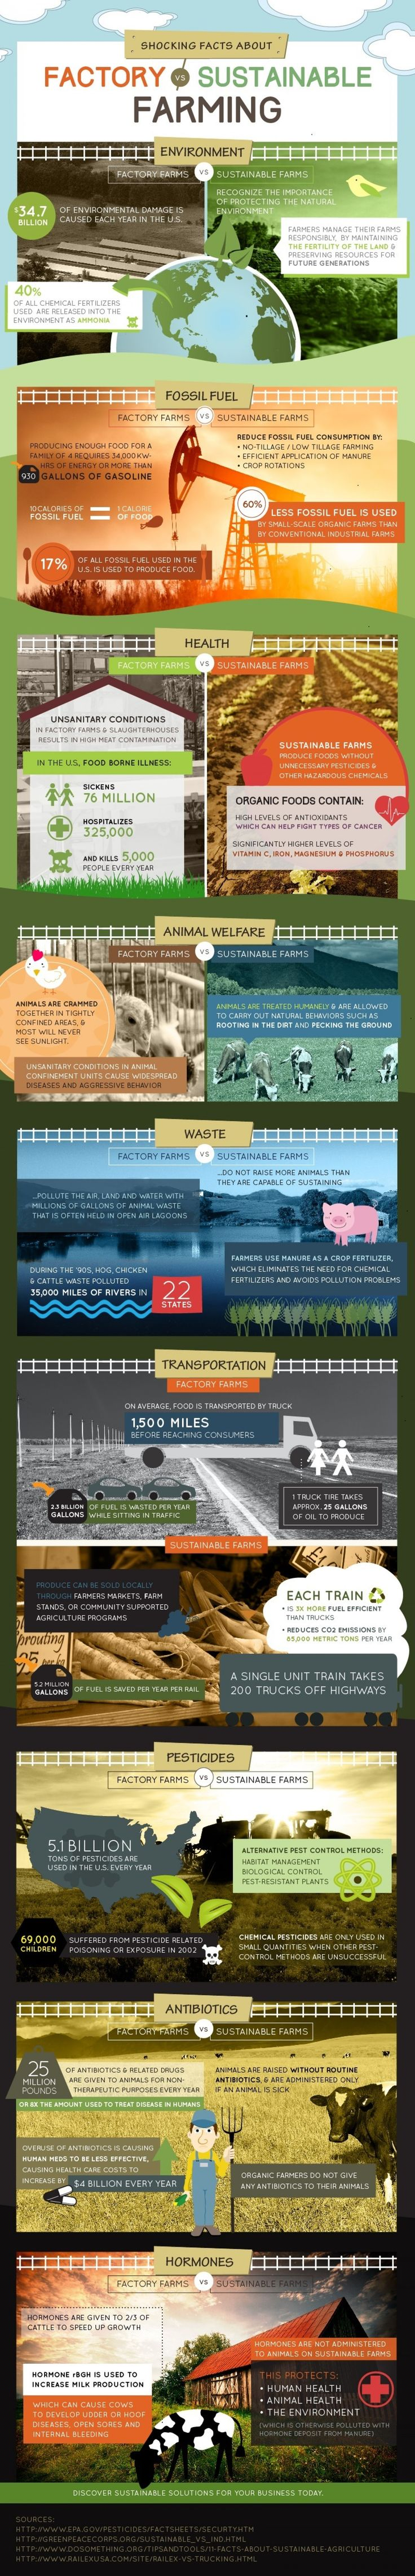 Shocking Facts About Factory Farming vs. Sustainable Farming Infographic